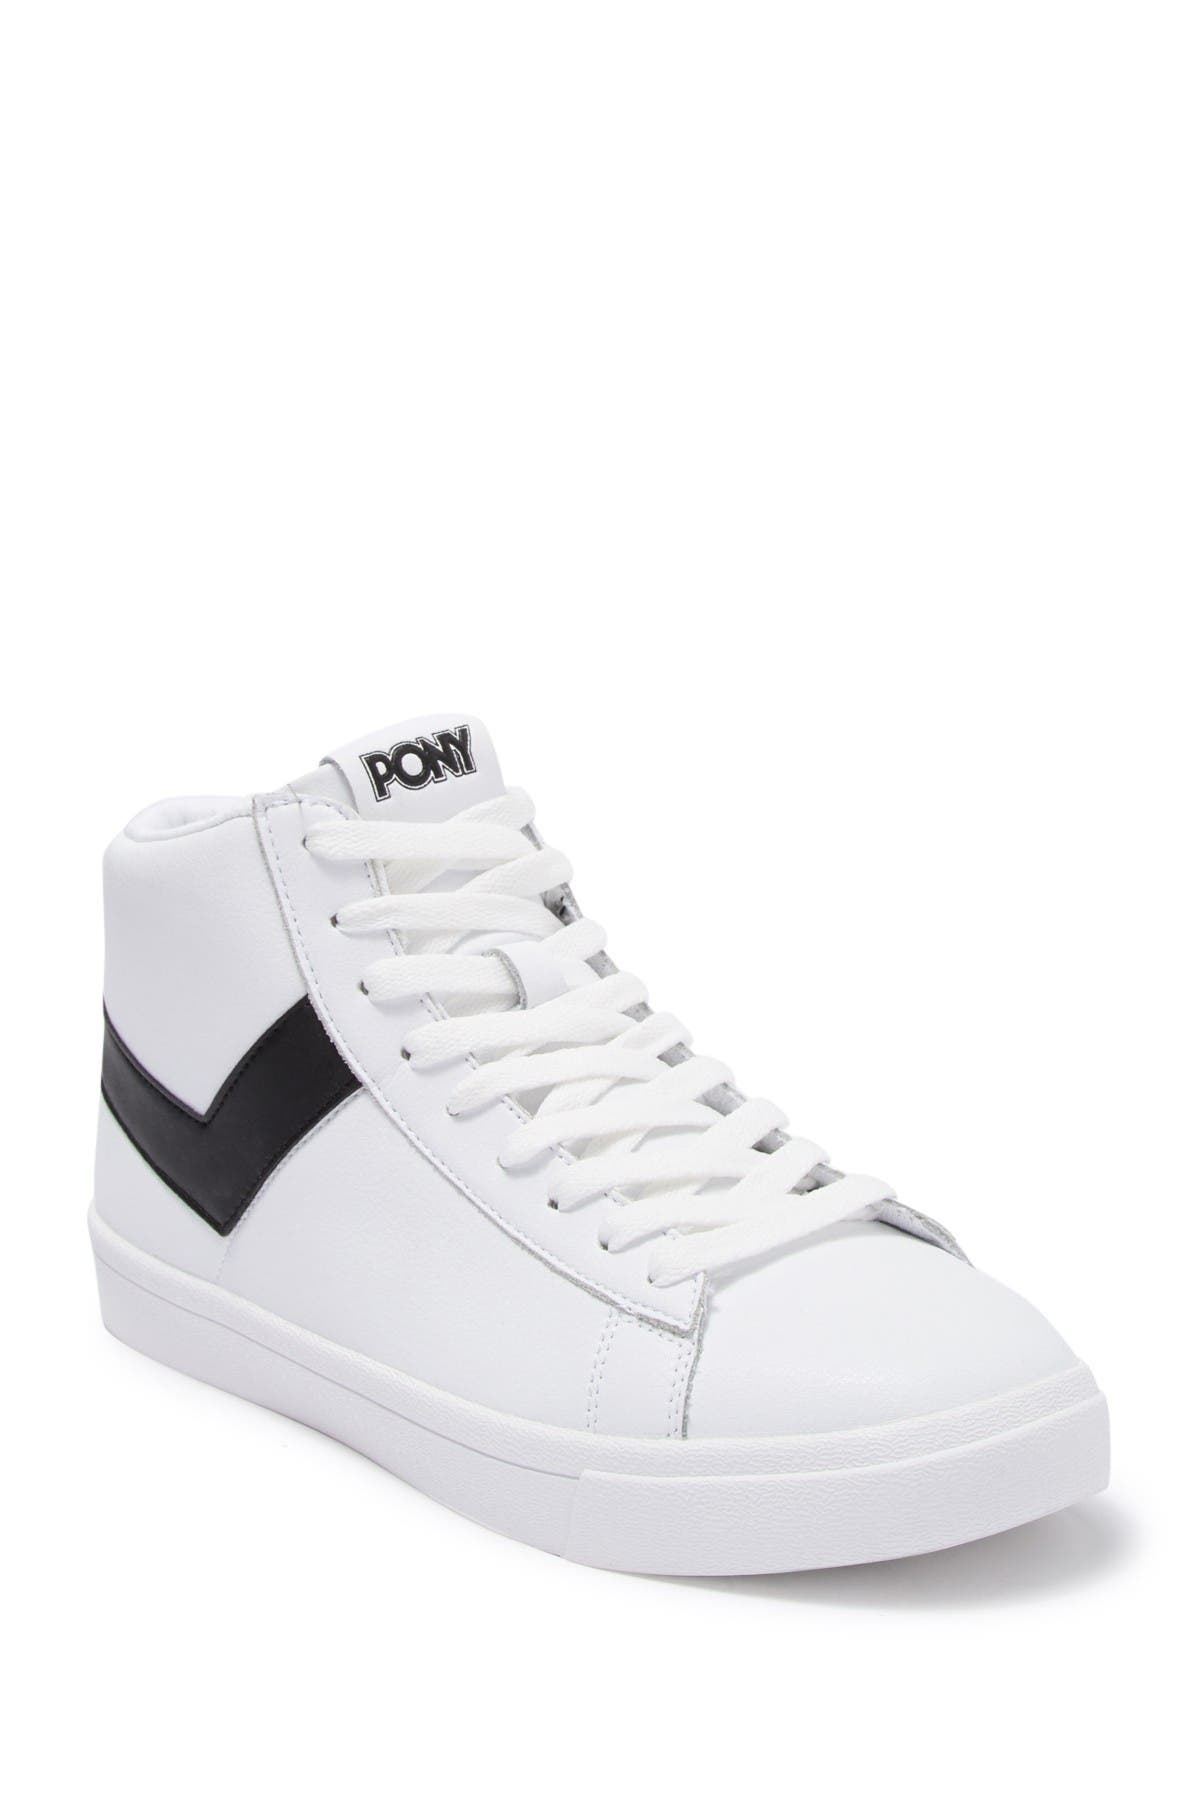 PONY   Classic High Top Sneaker